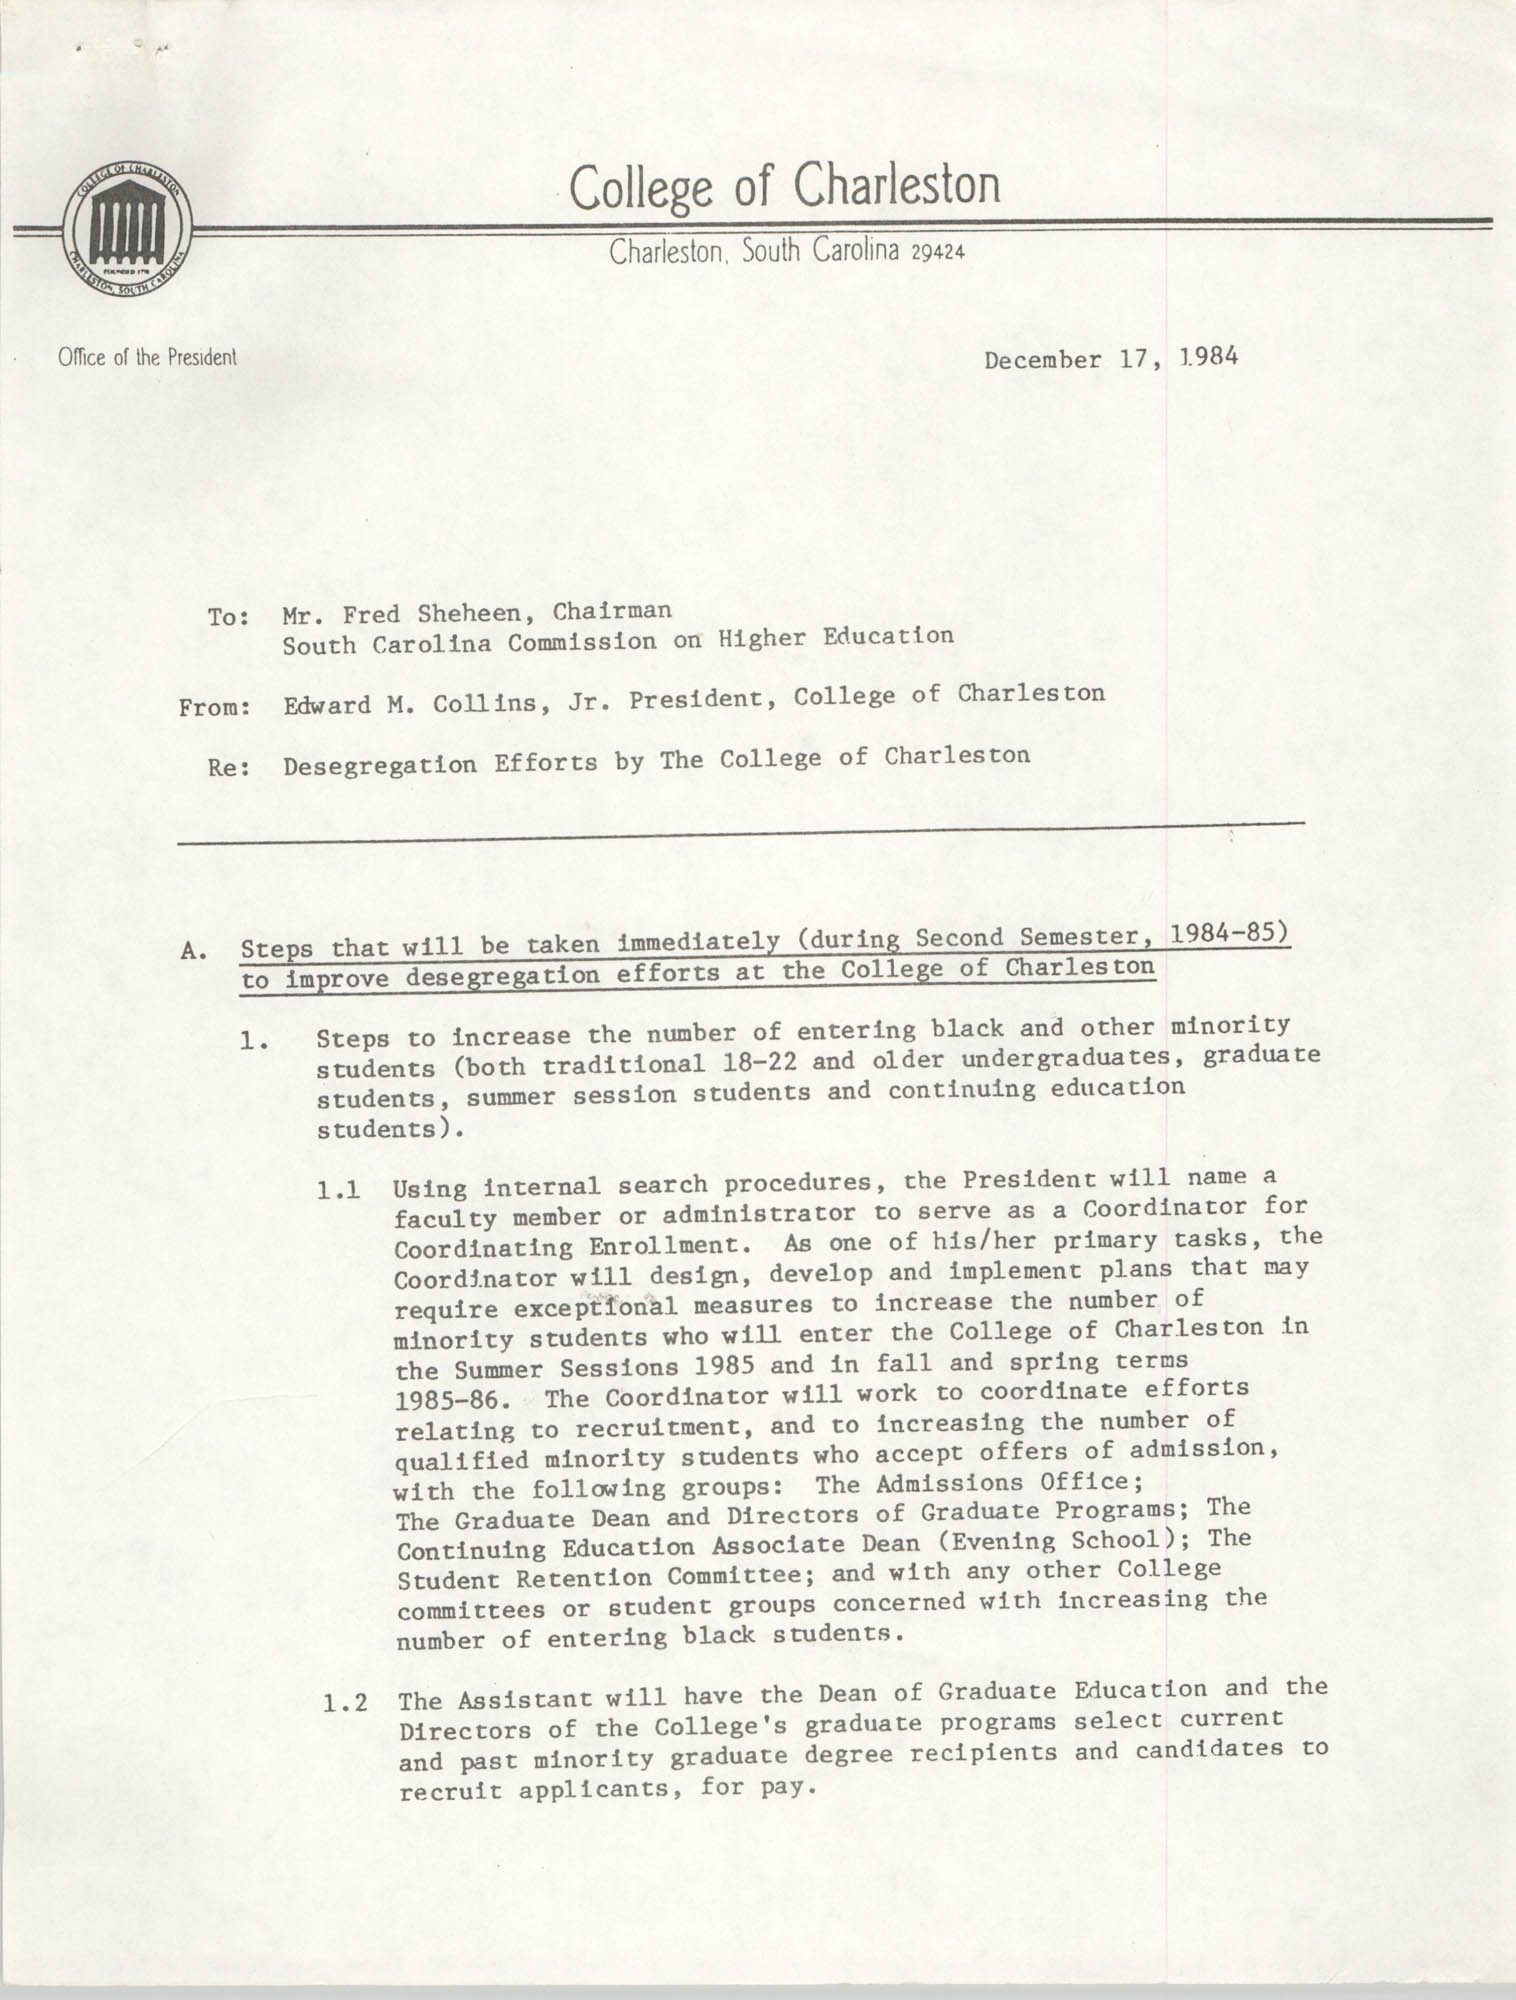 College of Charleston Memorandum, December 17, 1984